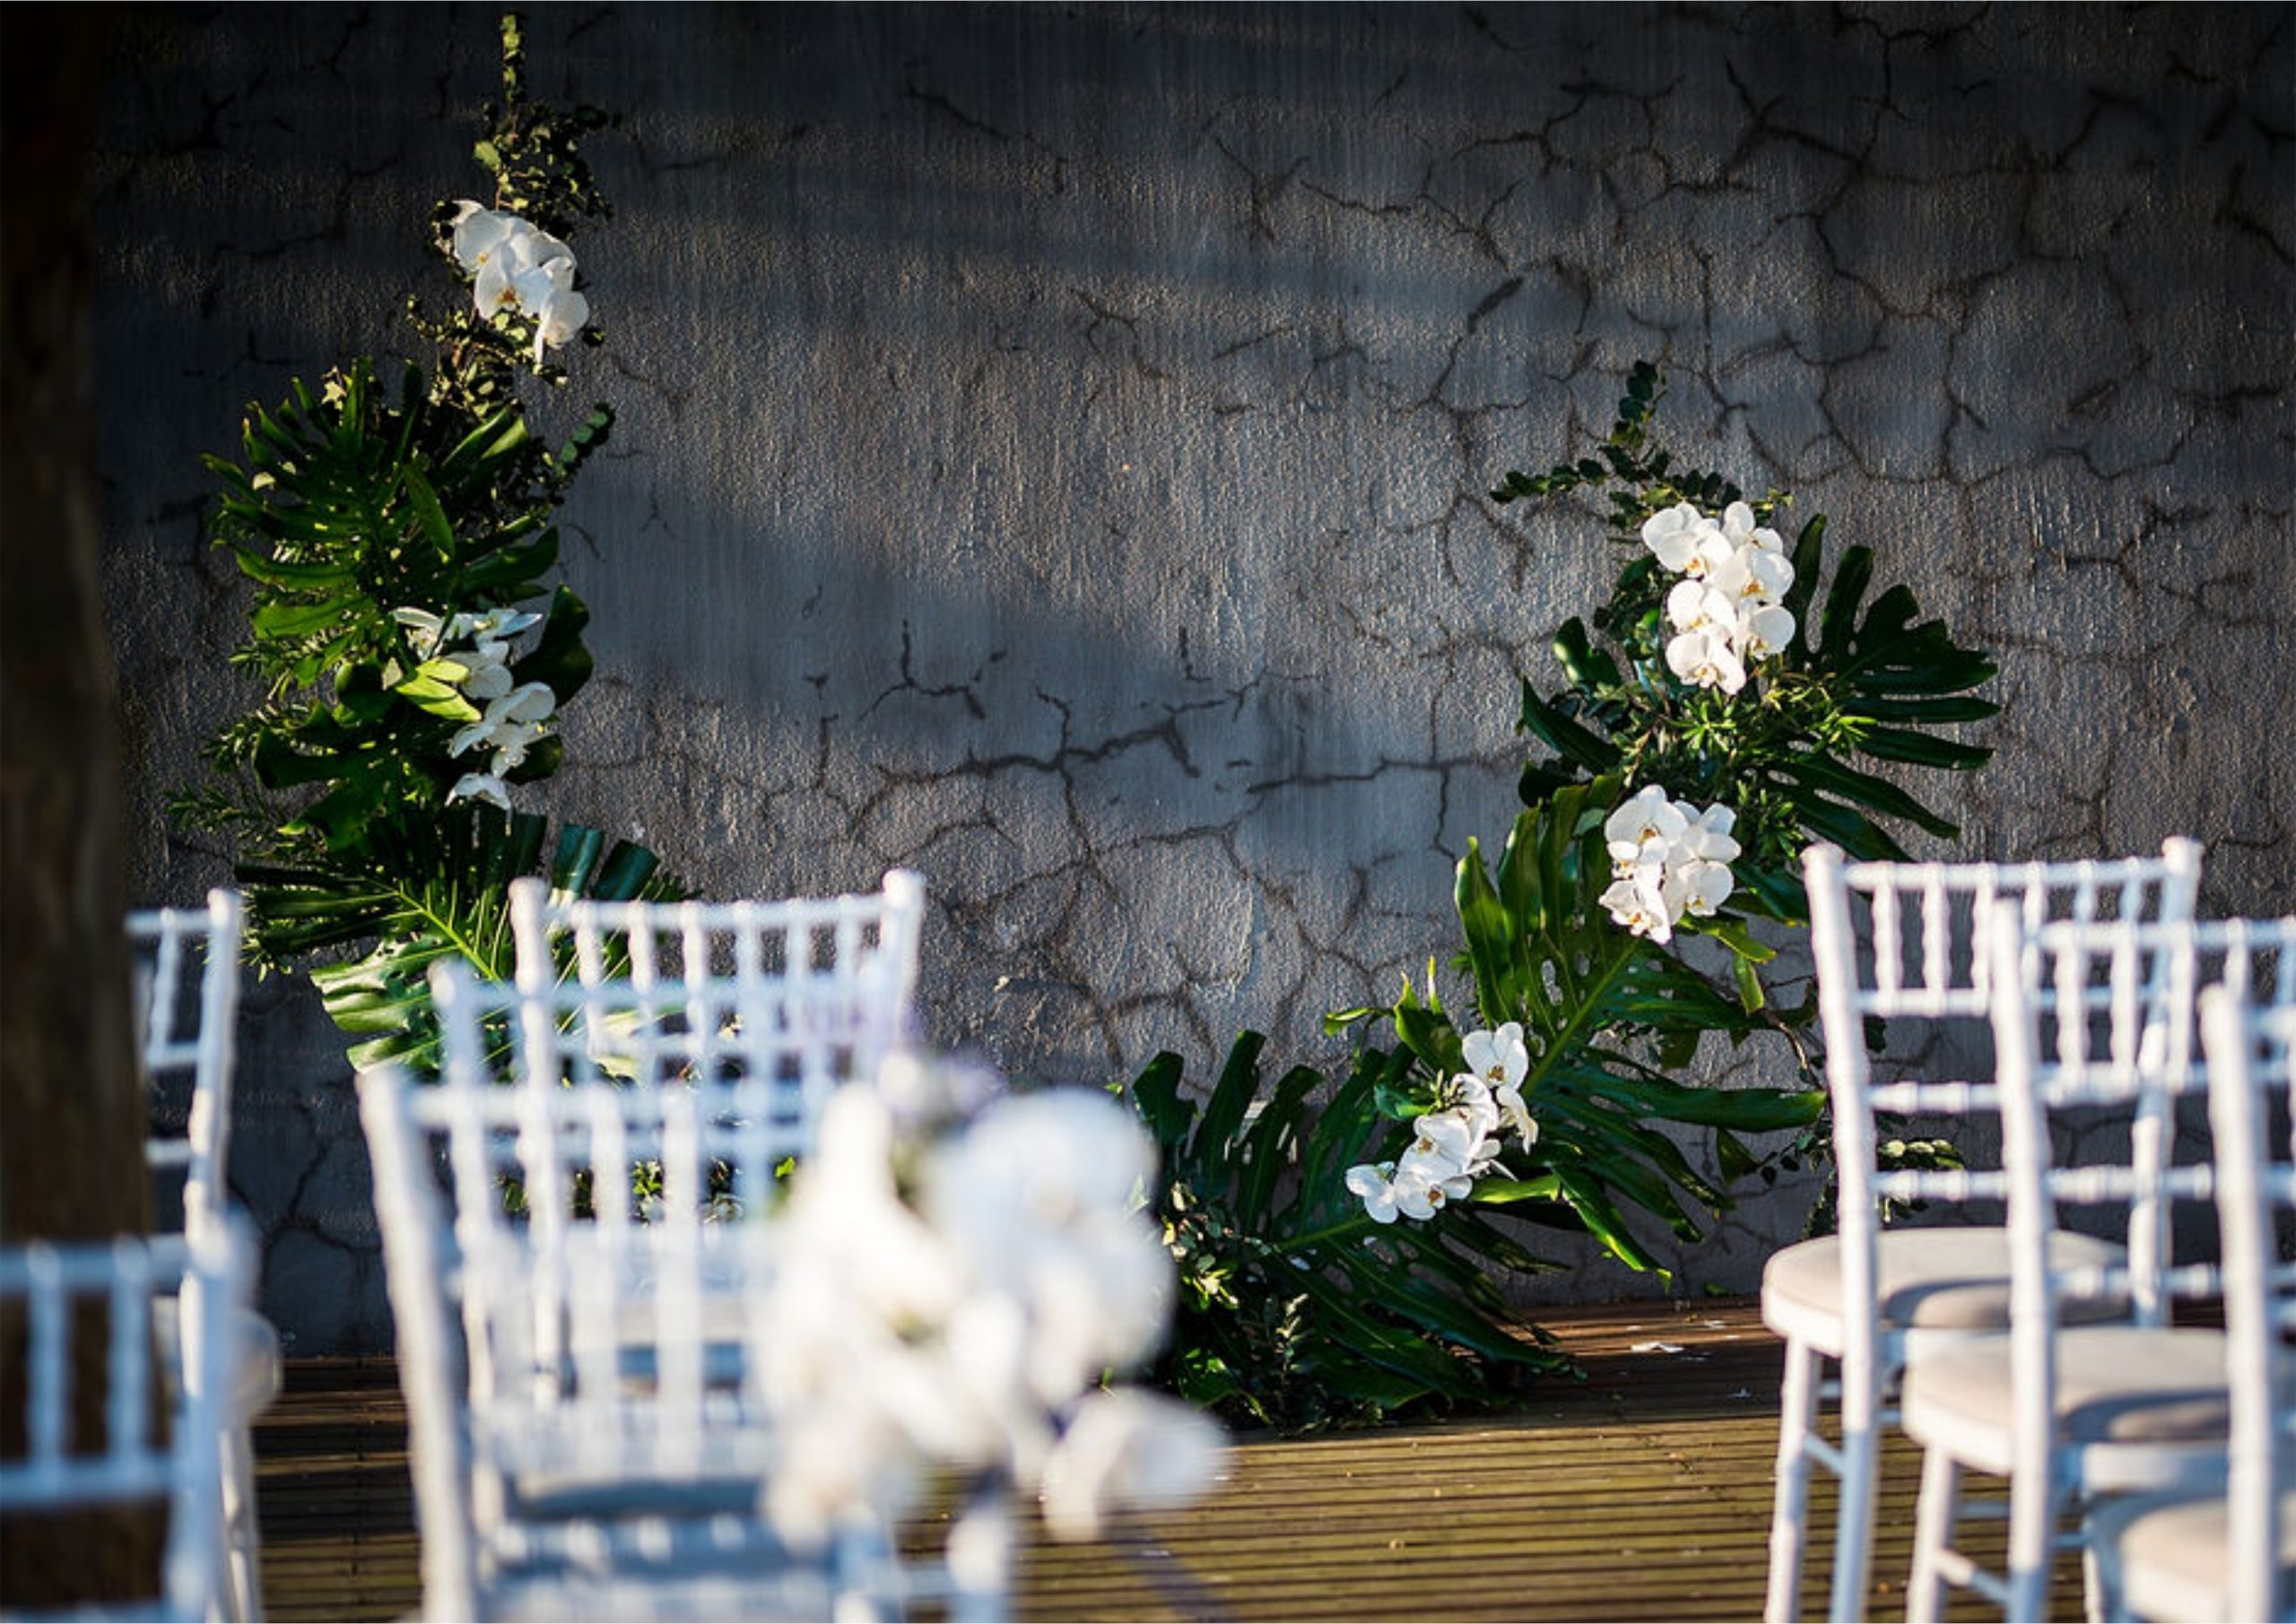 Bruidsgids Wedding Guide My Pretty Vintage Outdoor Romatic Vineyard Setting Pampas Grass Orchids Wedding Flowers Decor Events Photgraphy by Gustav Klotz